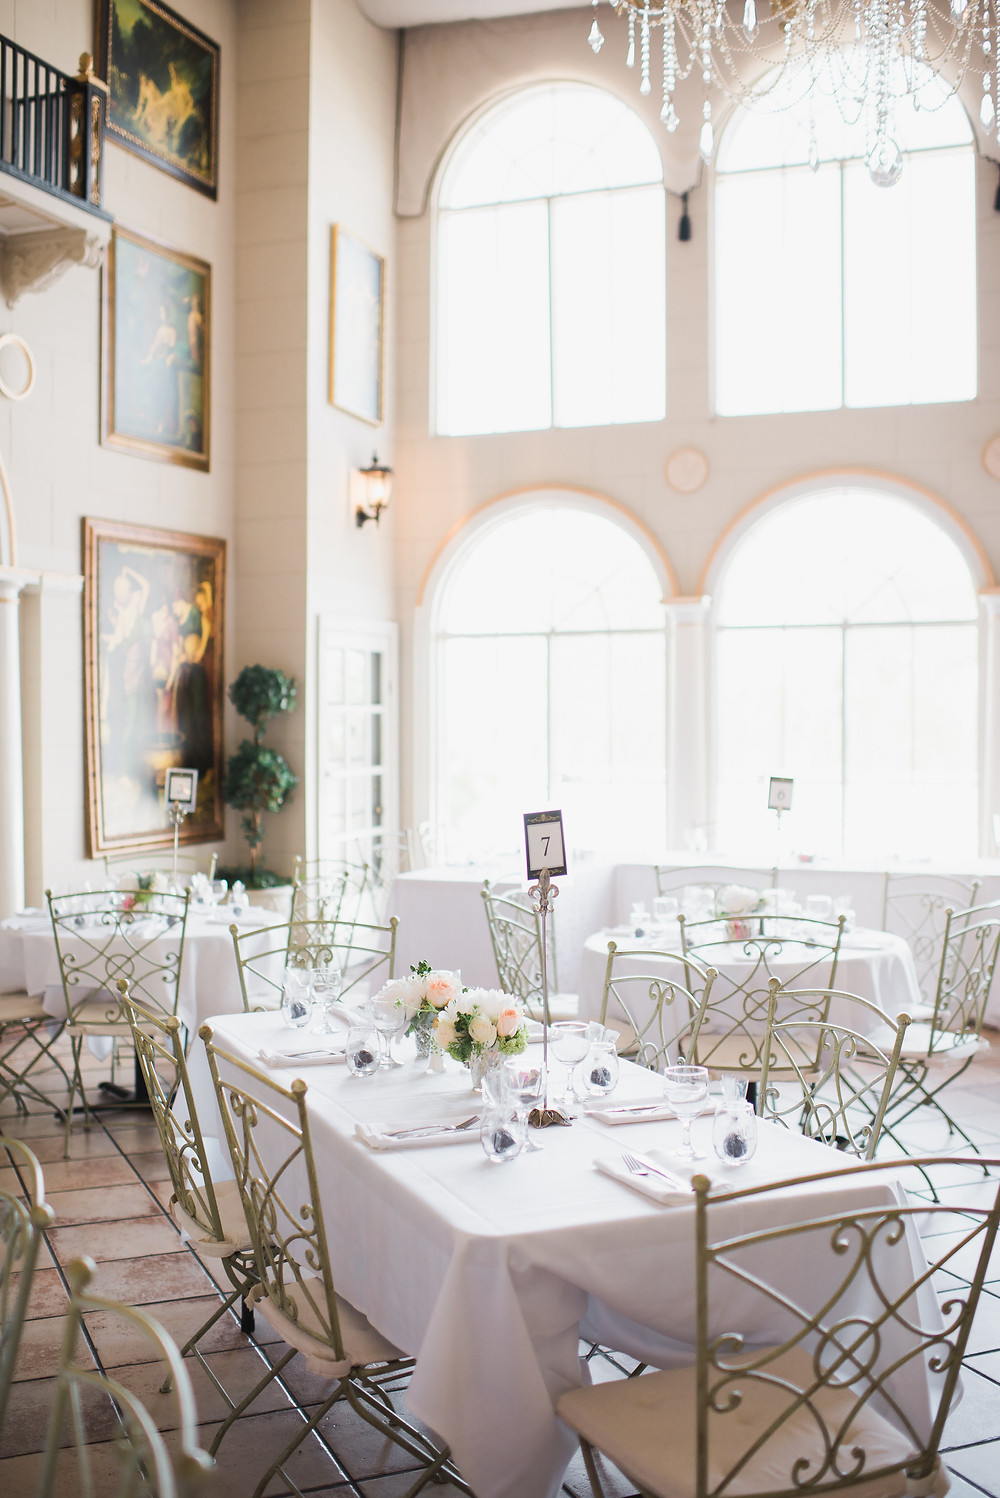 Grand Island Mansion reception | Visual Impact Design wedding flowers | Custock Photography